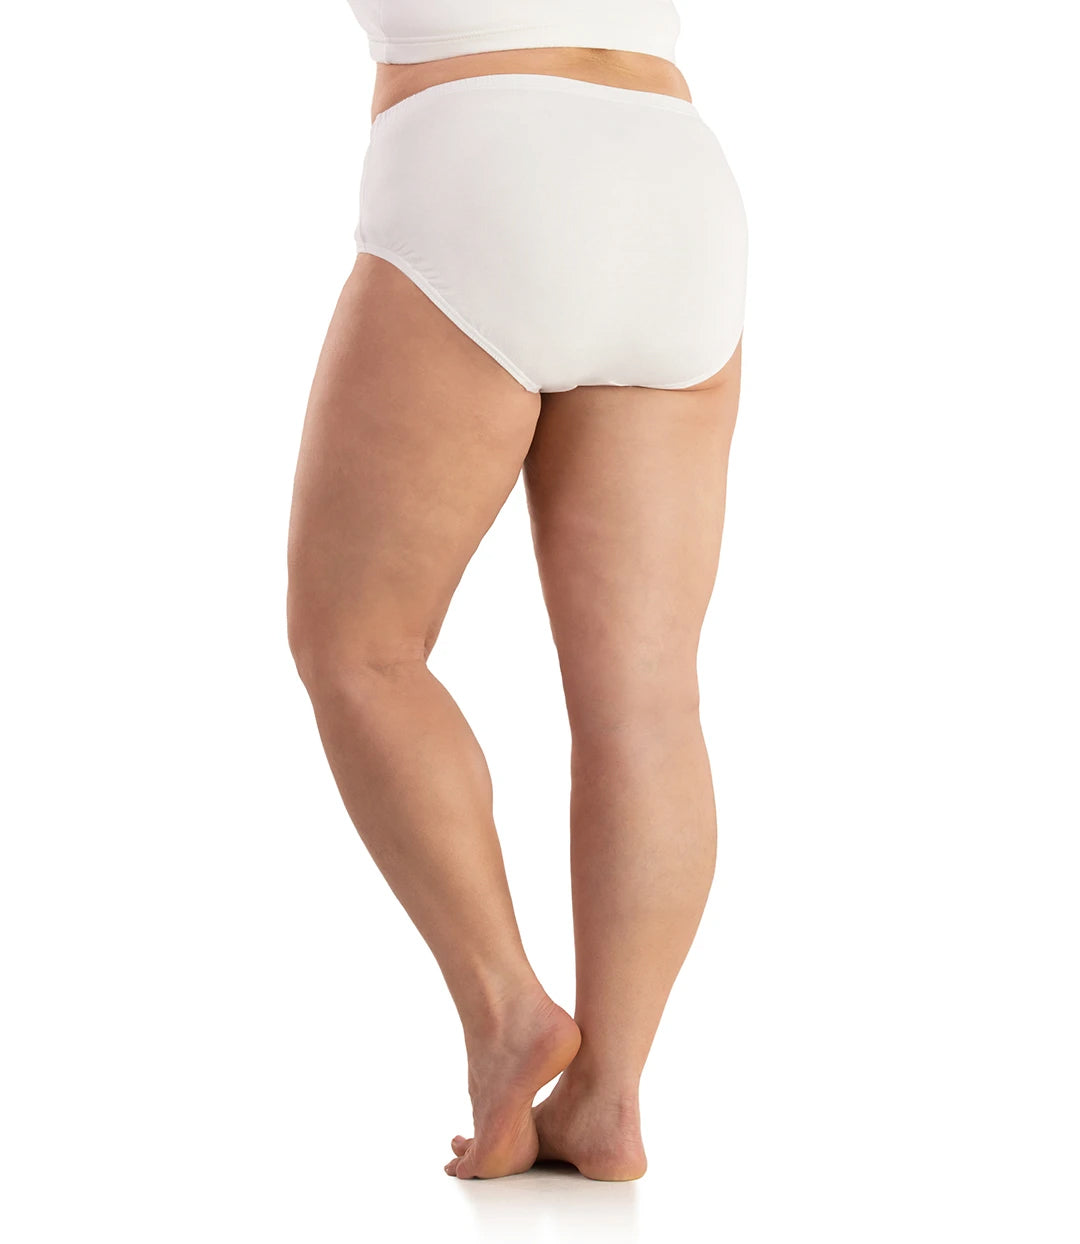 SupraKnit Briefs-Intimates Briefs-Osheka, Inc-XL-White-JunoActive